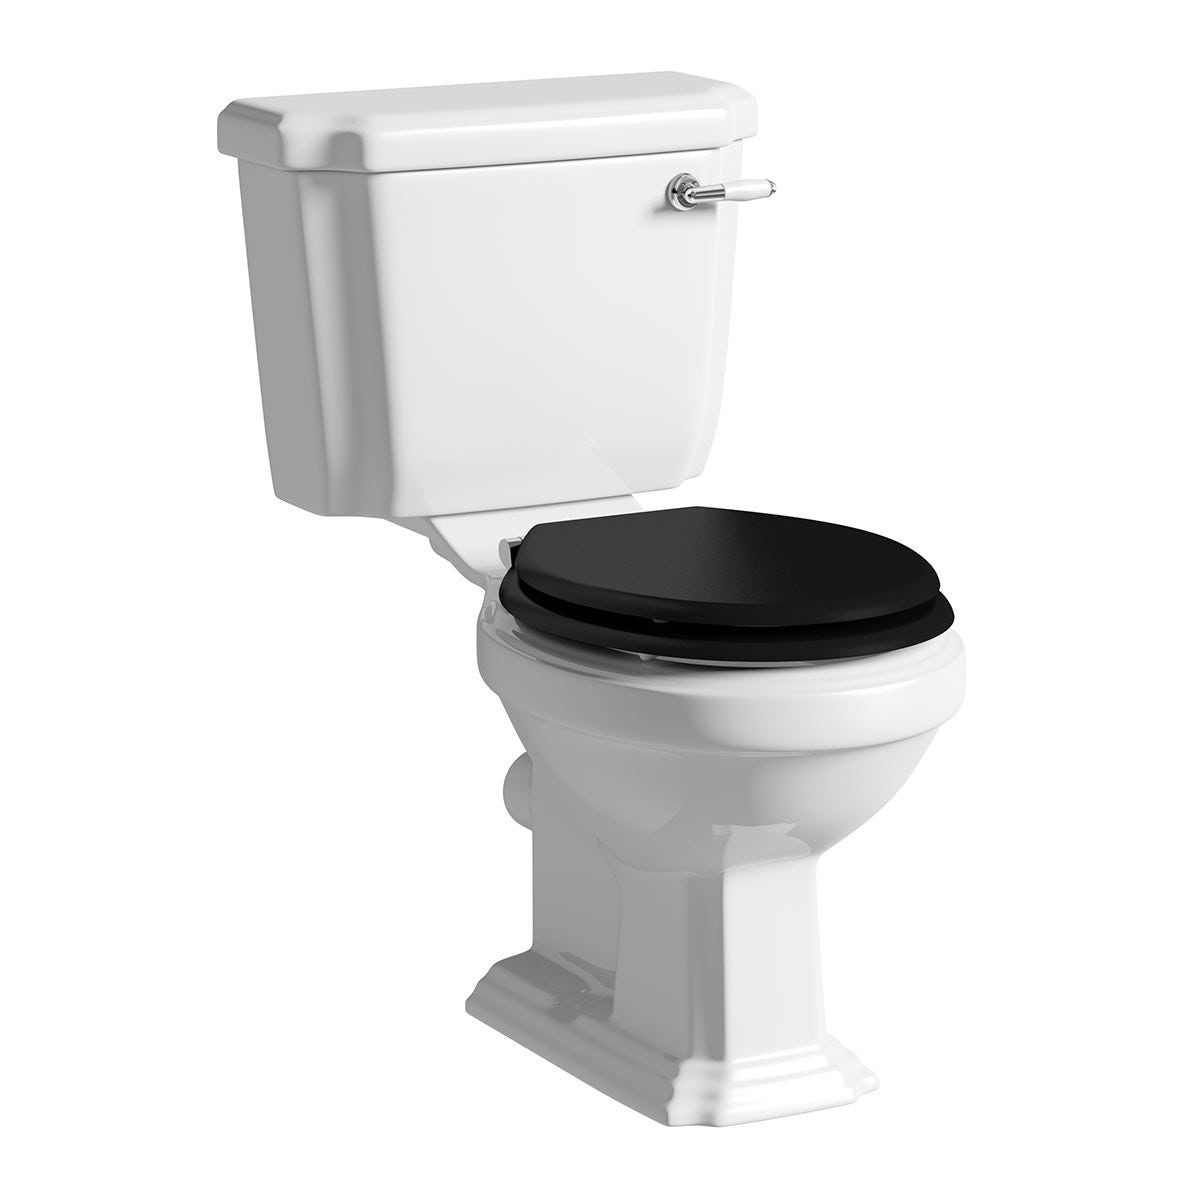 The Bath Co. Dulwich close coupled toilet with black wooden toilet seat